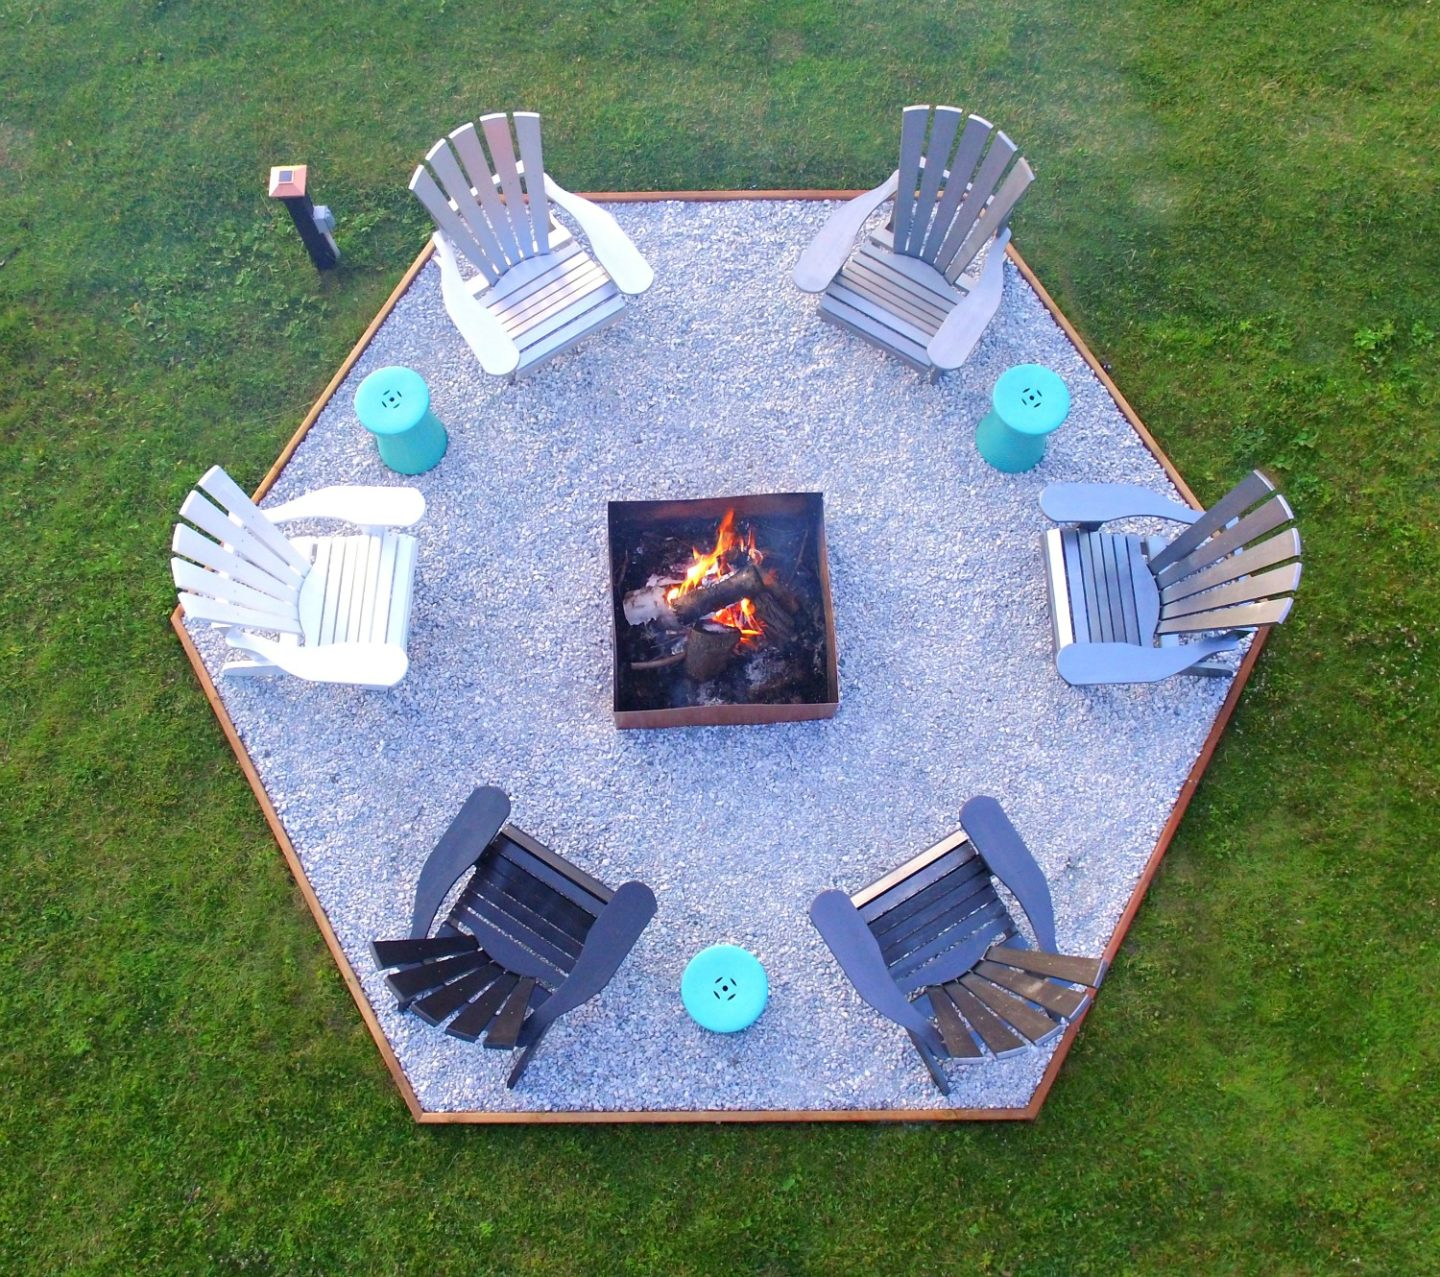 Contemporary Fire Pit Makeover + DIY Ombre Adirondack Chairs (Sponsored by The Home Depot Canada)